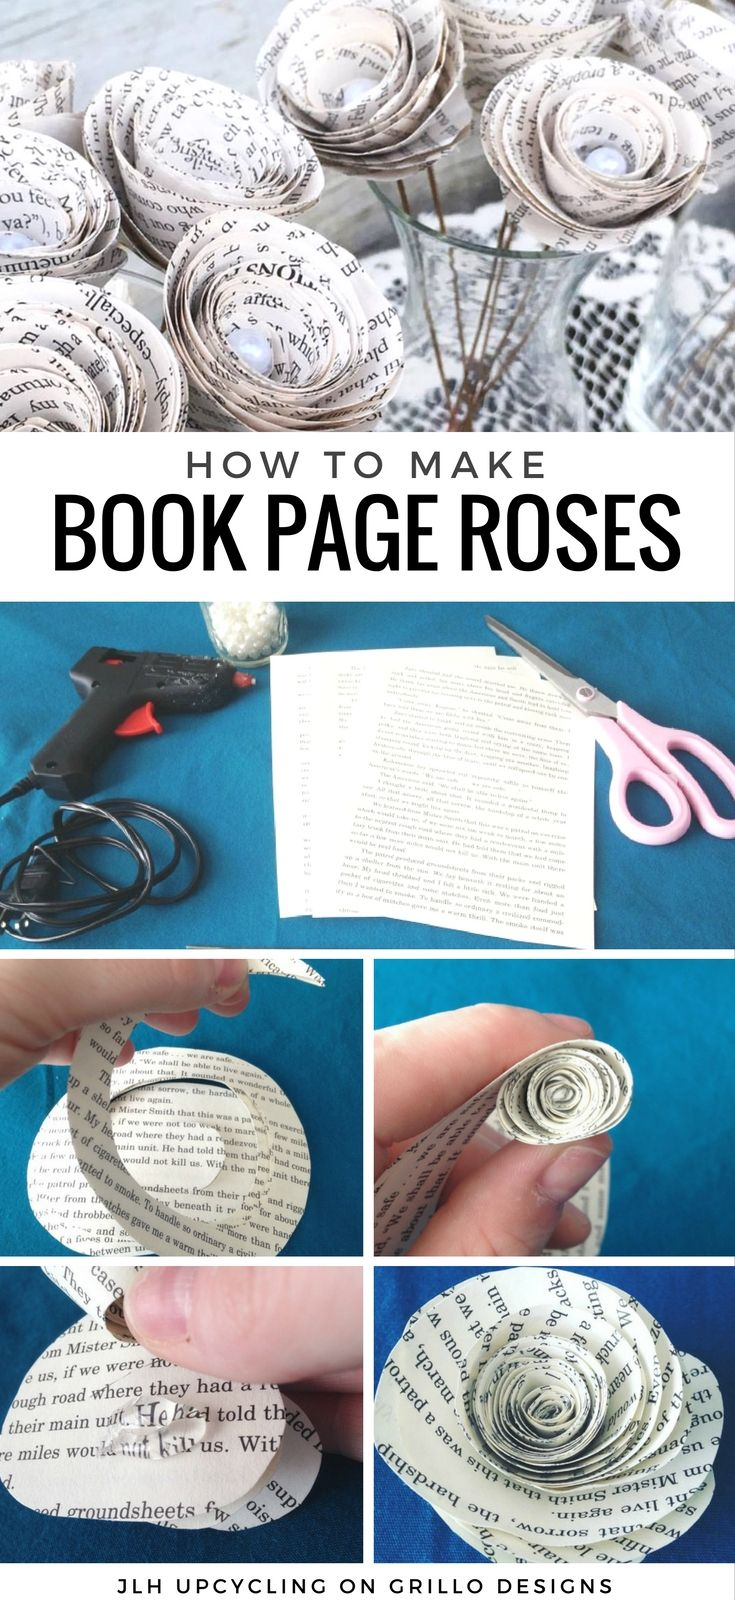 Book page roses tutorial - Jen Holz from JLH UPCYCLING shares how to create gorgeous roses from pages (great for flower bouquet or wedding centerpieces!)